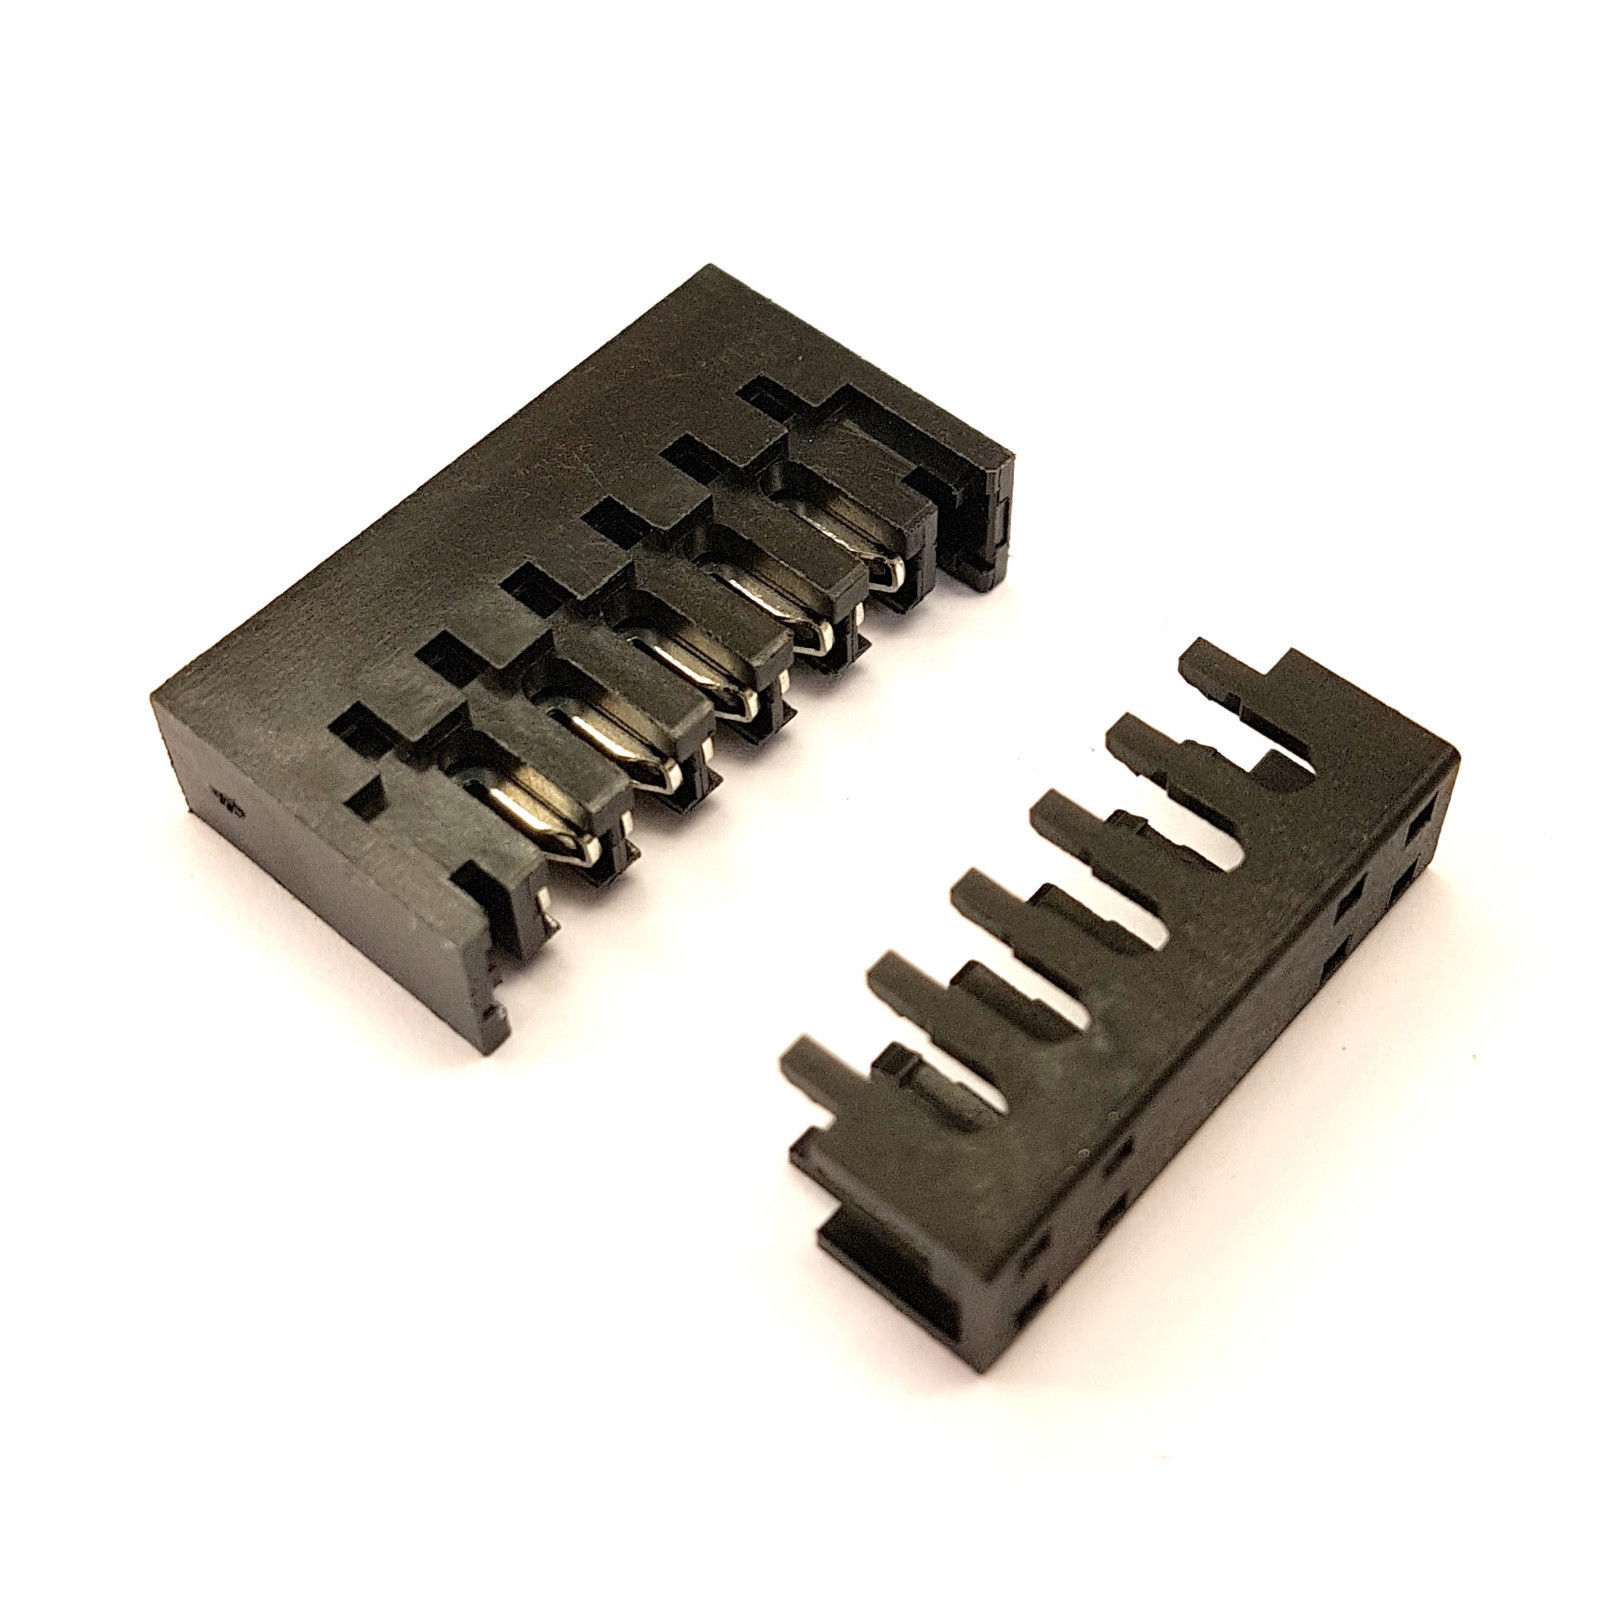 DIY STRAIGHT MALE SATA PC PSU POWER SUPPLY CONNECTOR + CAPS - PK OF 10